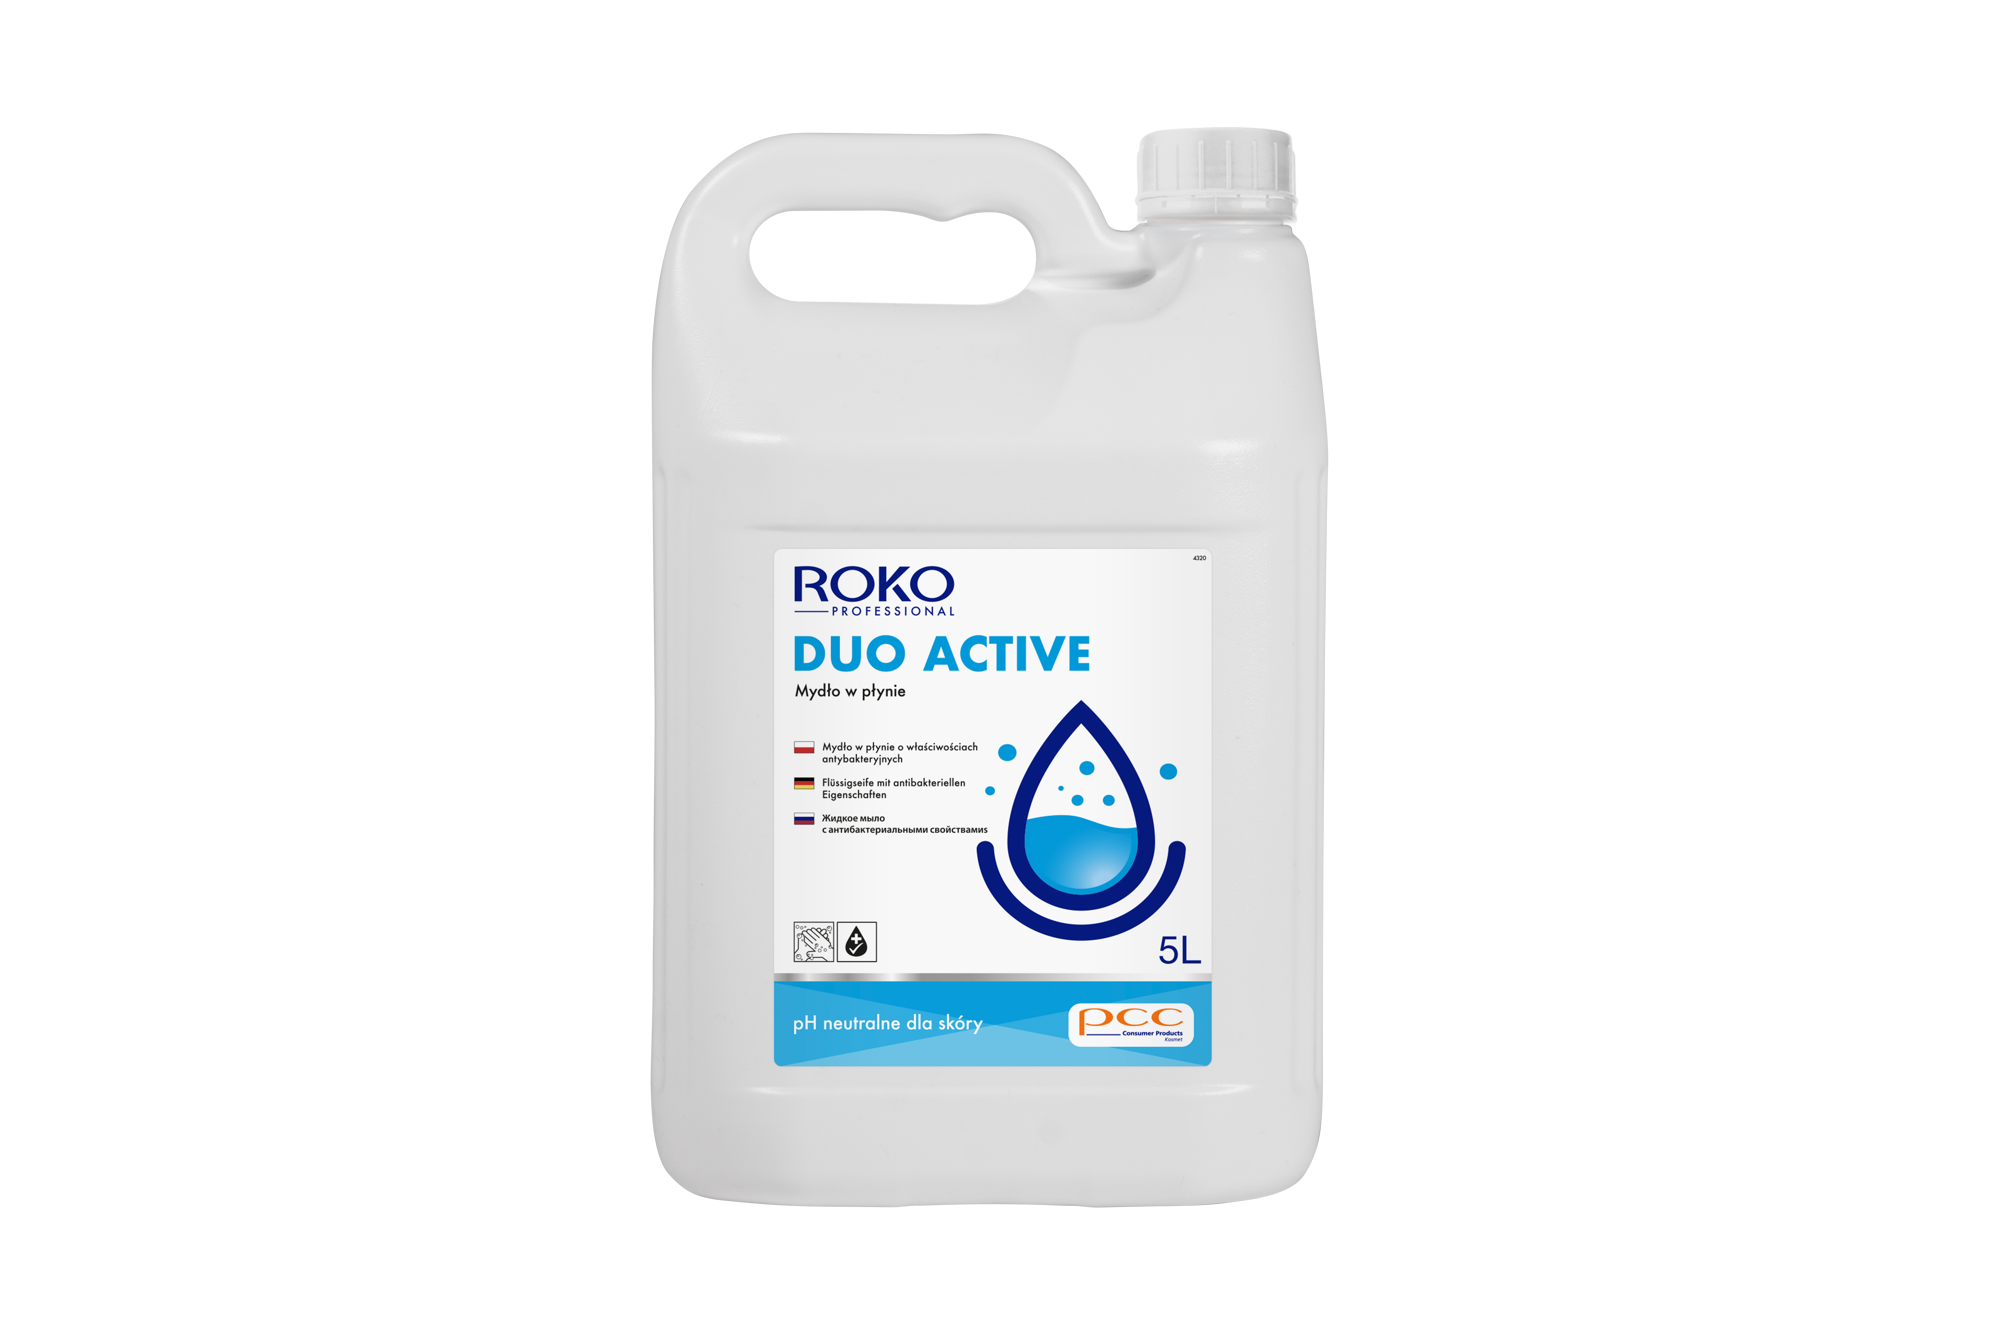 ROKO<sup>&reg;</sup> PROFESSIONAL SOAP DUO ACTIVE